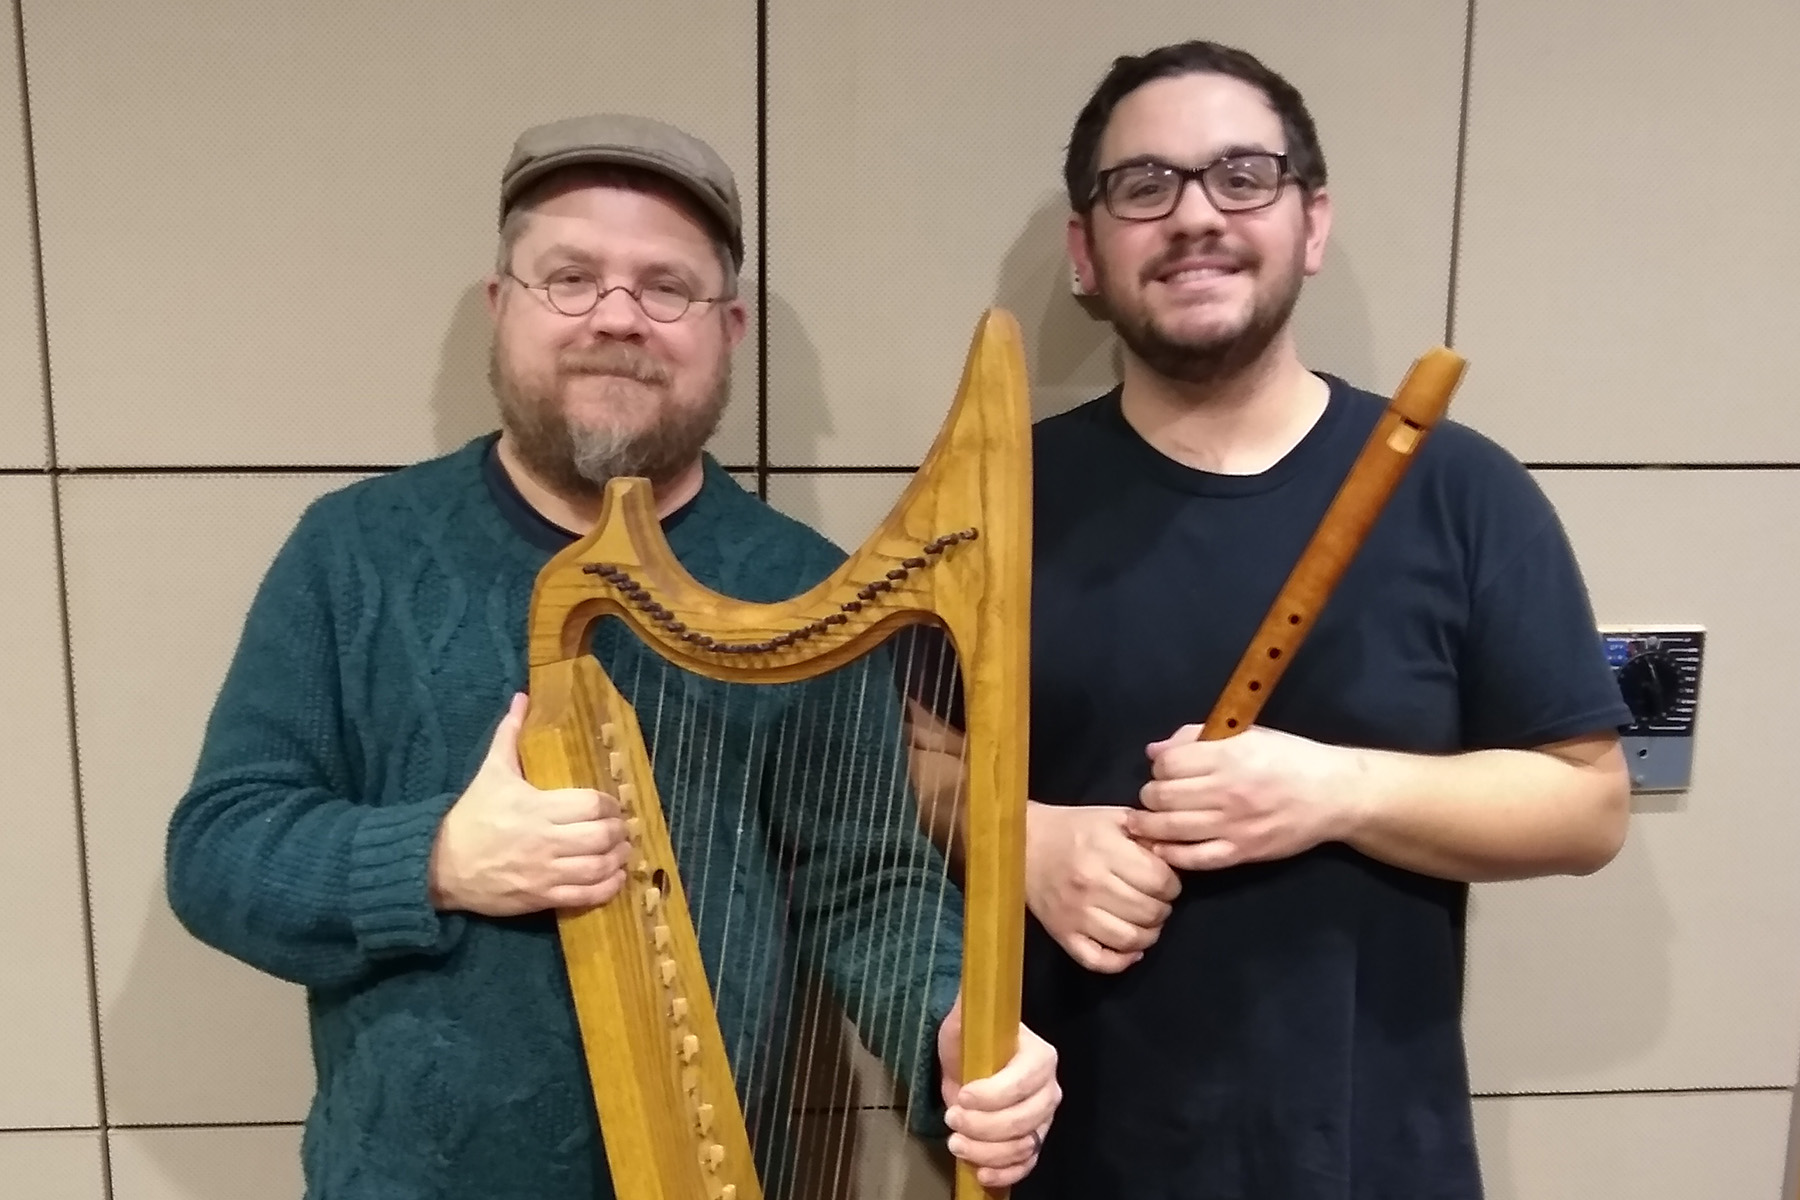 Keith Collins and Christopher Armijo with the Bray Harp